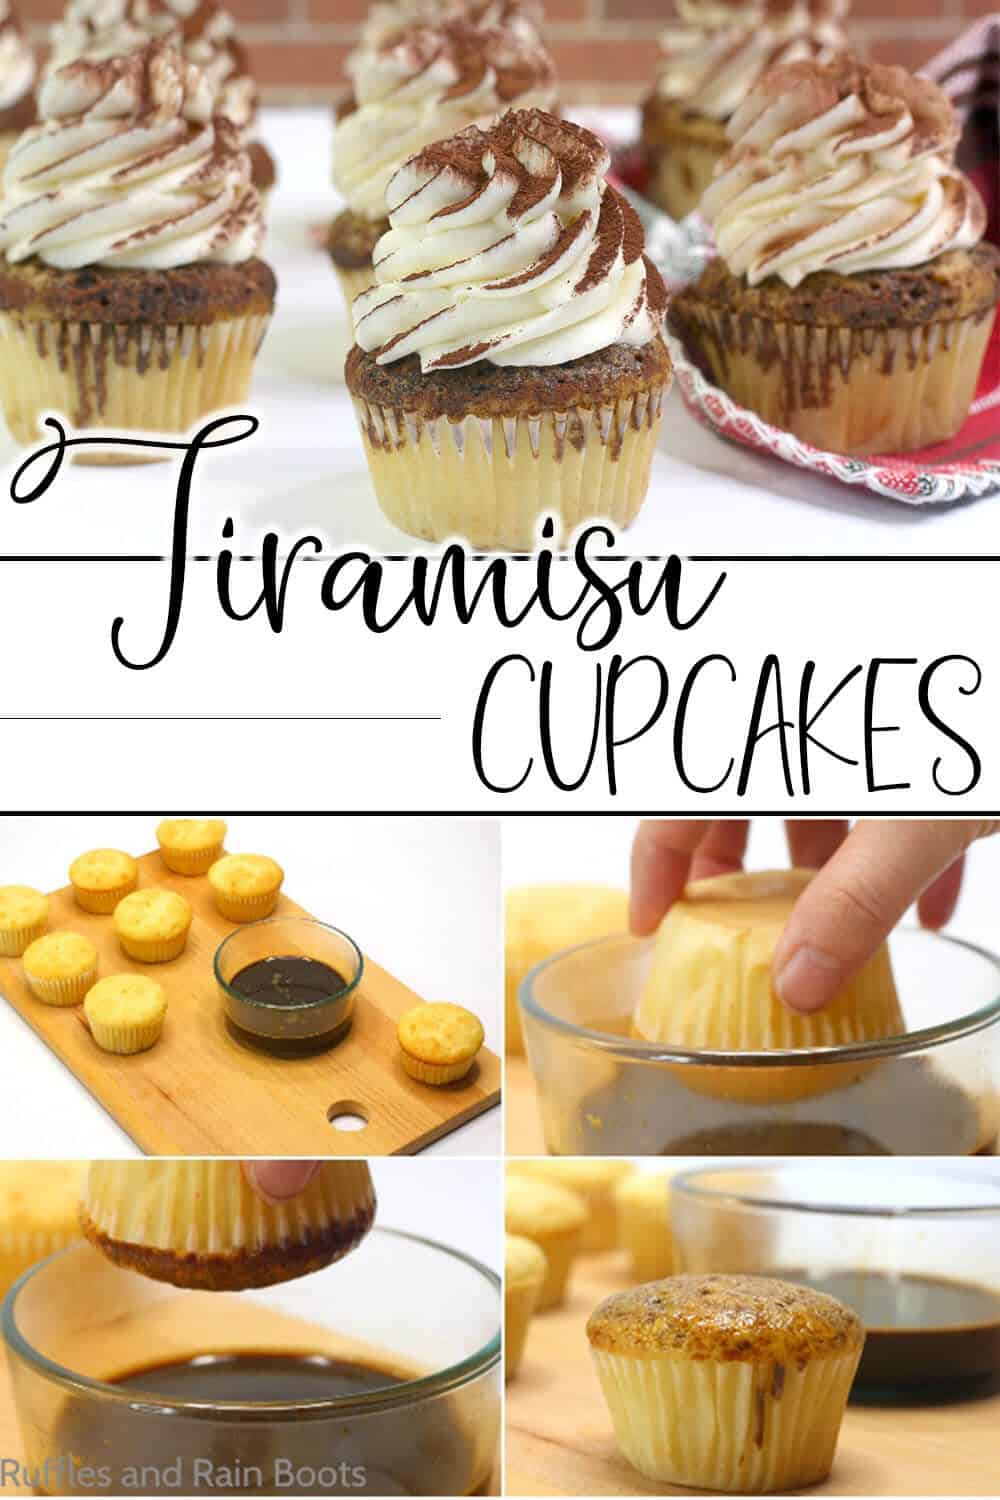 photo collage of easy cupcake recipe with coffee dip with text which reads Tiramisu Cupcakes